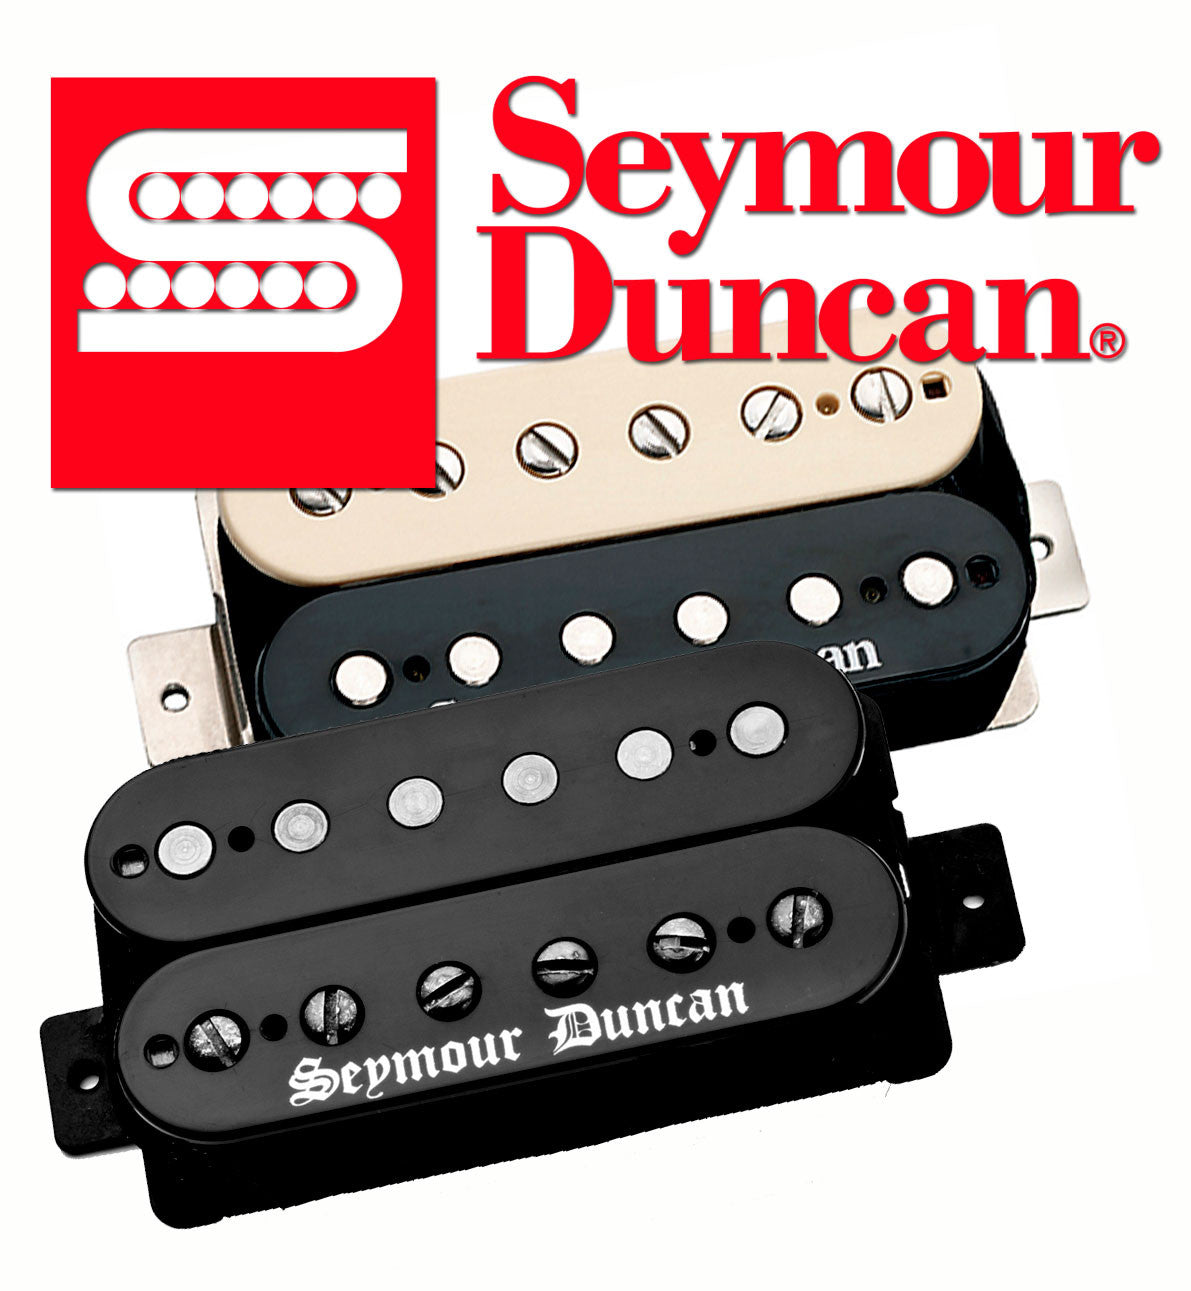 Seymour Duncan Upgrade Kit | Diamond Guitars